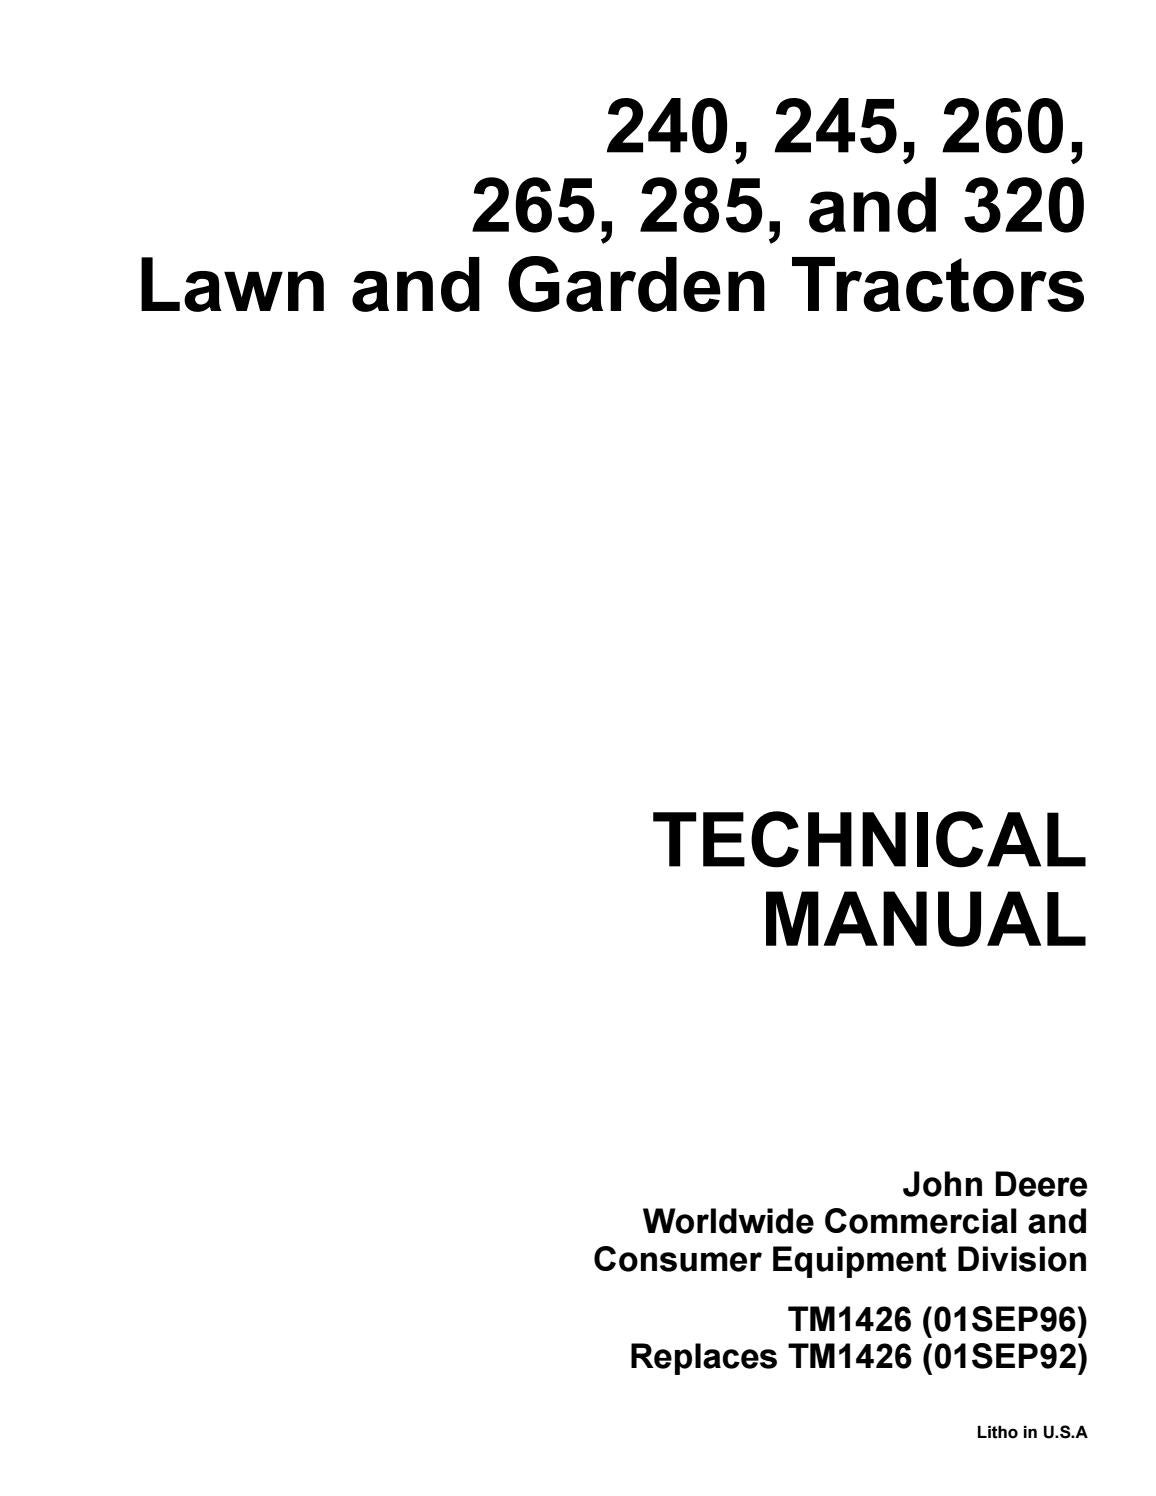 JOHN DEERE 285 LAWN AND GARDEN TRACTOR Service Repair Manual by 1635691 -  issuuIssuu